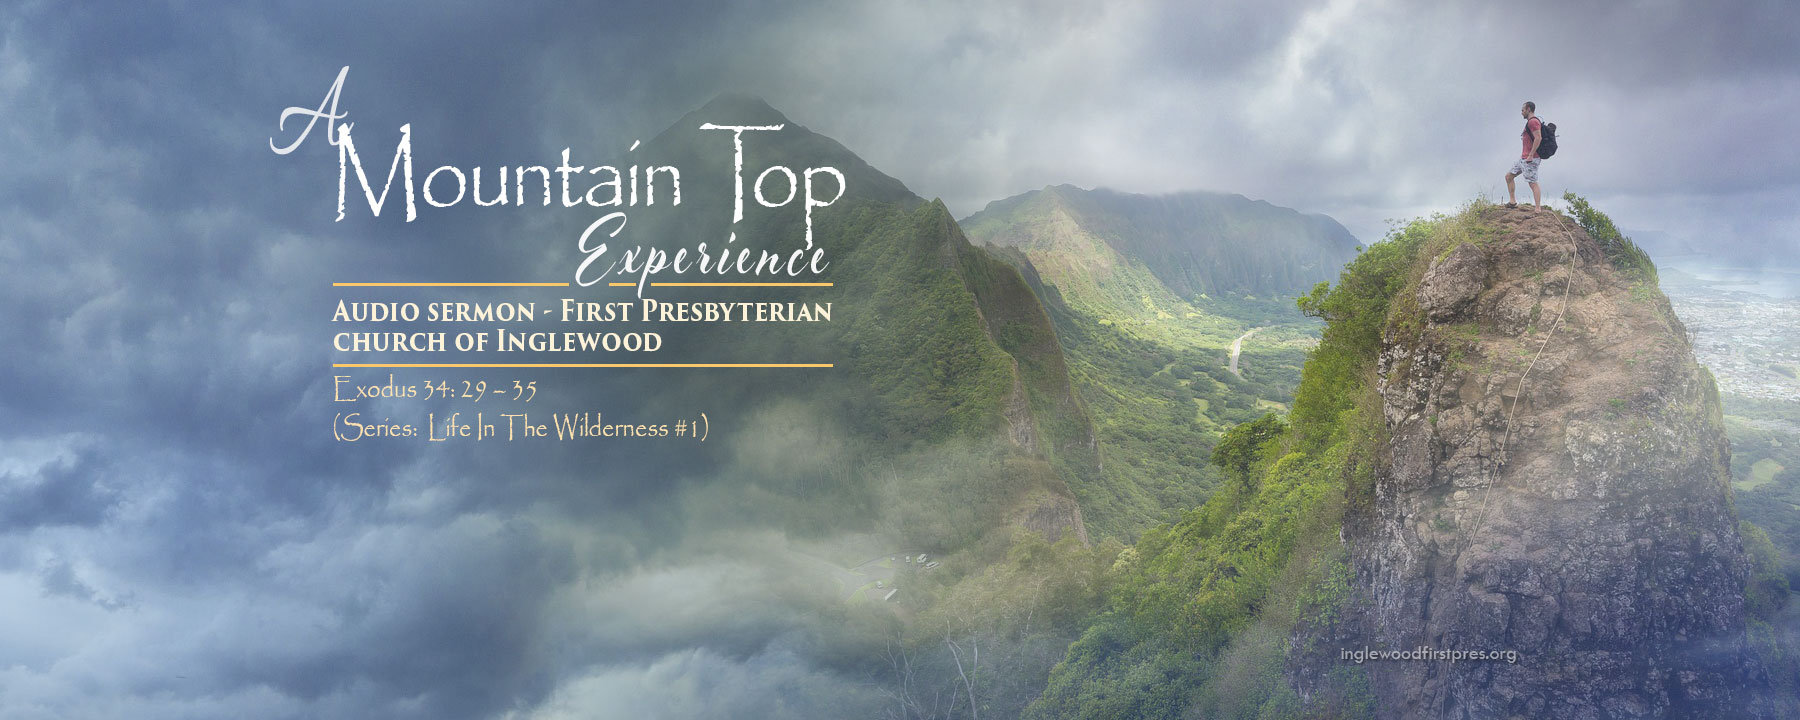 Audio Sermon: A Mountain Top Experience by Rev. Dr. Harold E. Kidd (Exodus 34: 29 – 35)